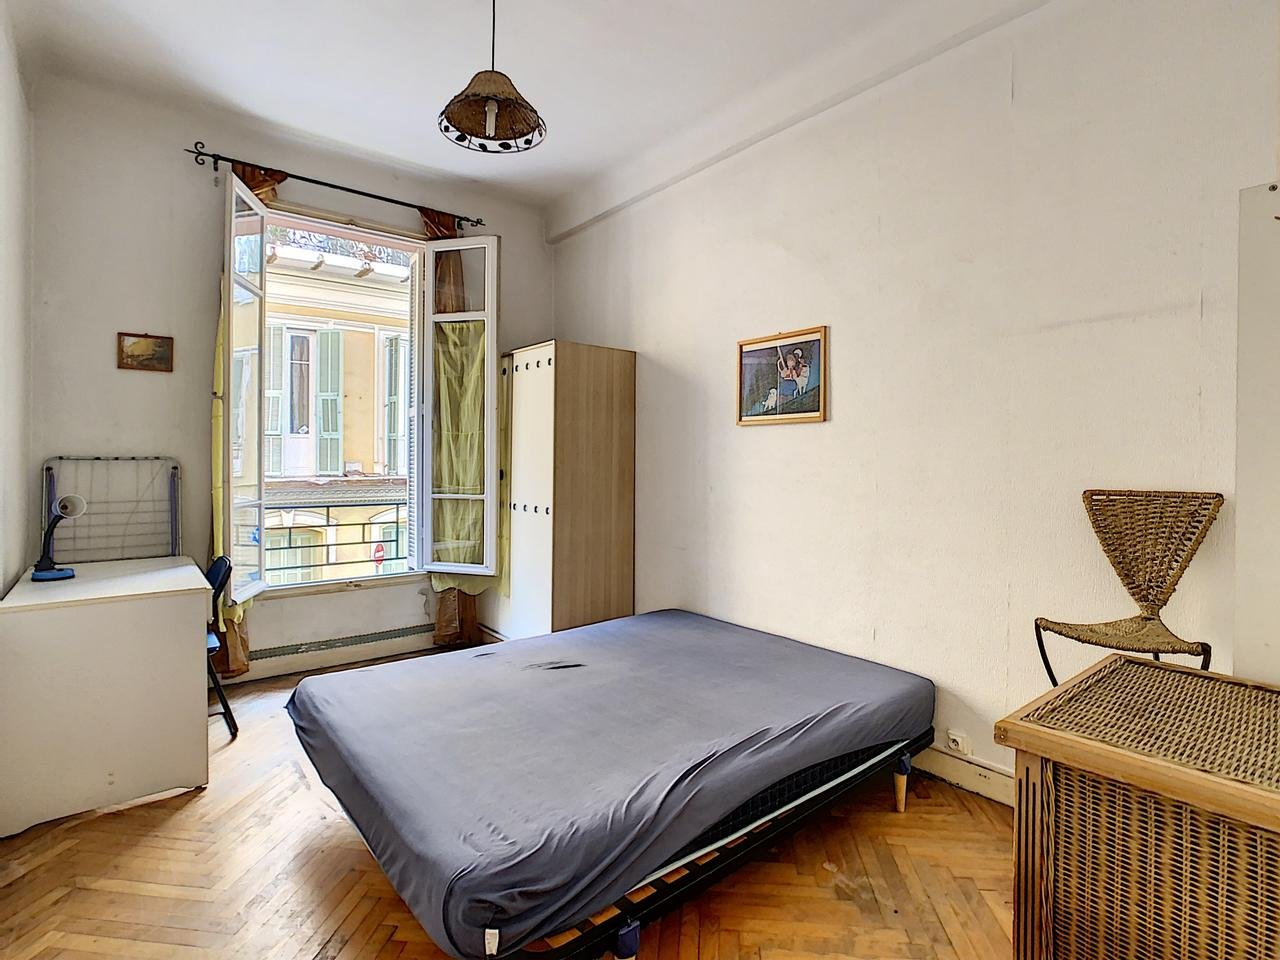 Appartement  2 Rooms 39m2  for sale   225000 €